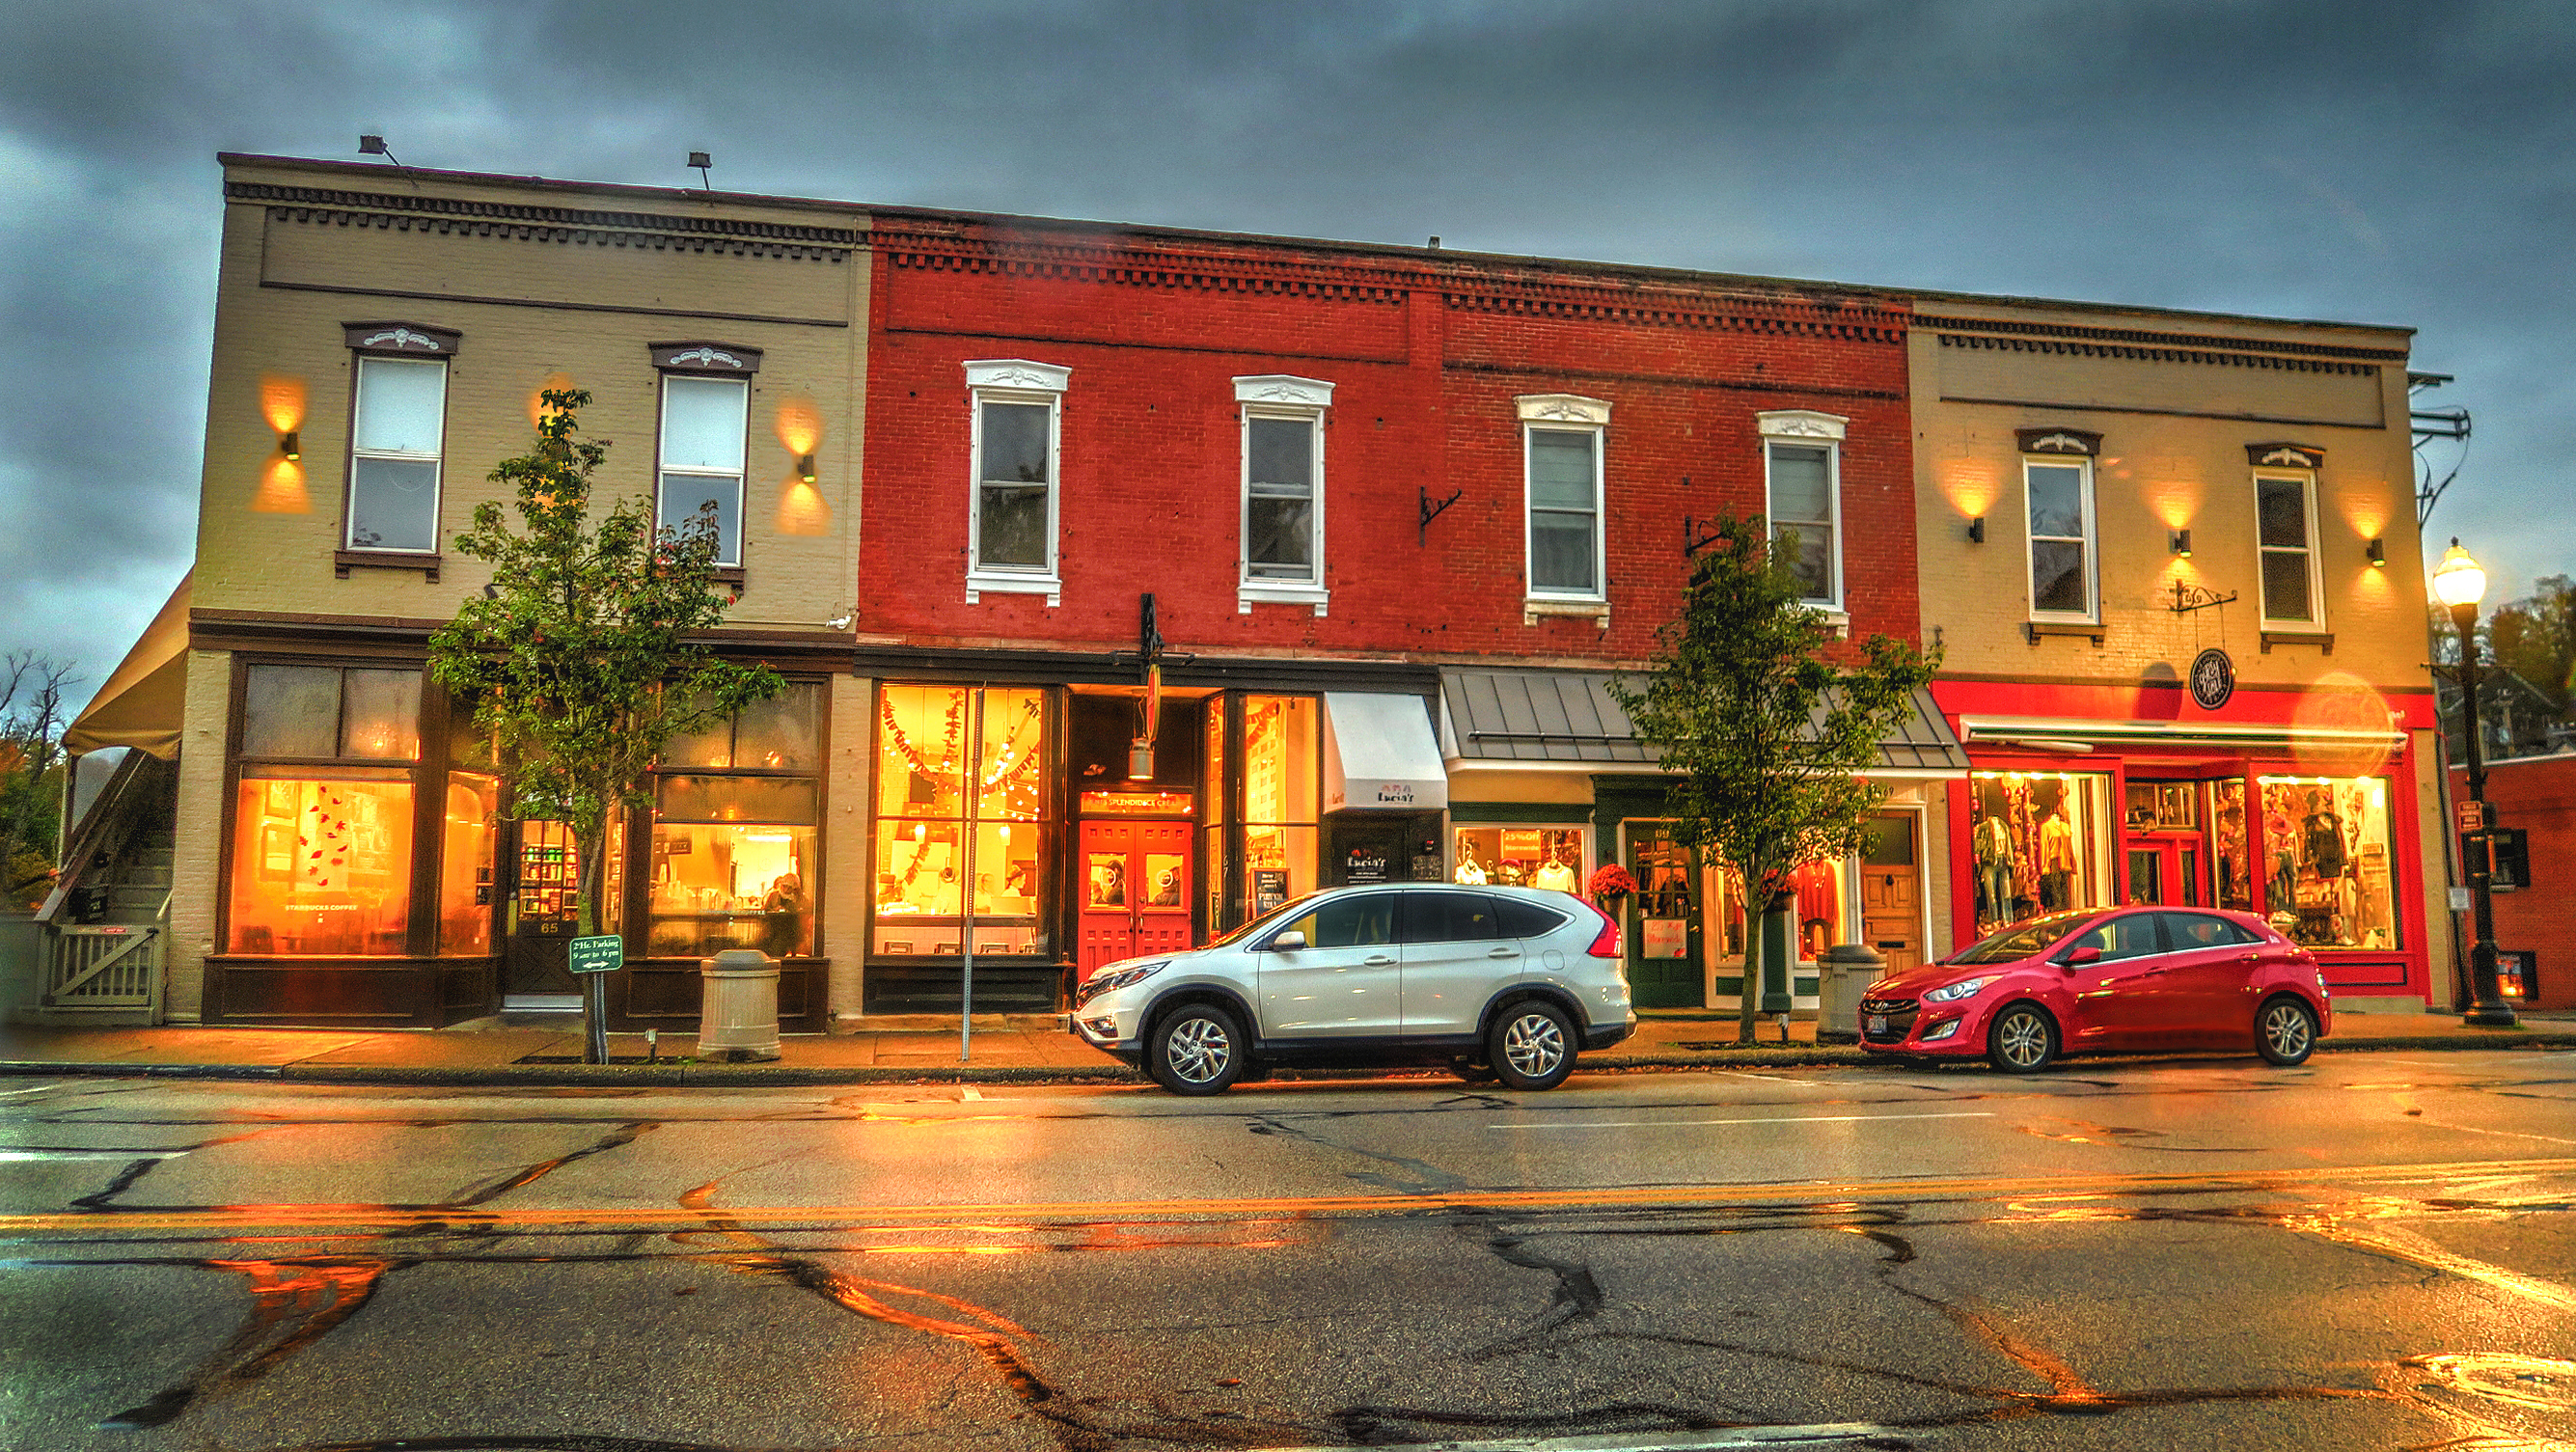 Chagrin Falls, Ohio / USA - October 29, 2017: Rainy Evening View of Starbucks, Jeni's, and Outfitters Shops on Main Street in the Business District of Historical Downtown Chagrin Falls, Ohio